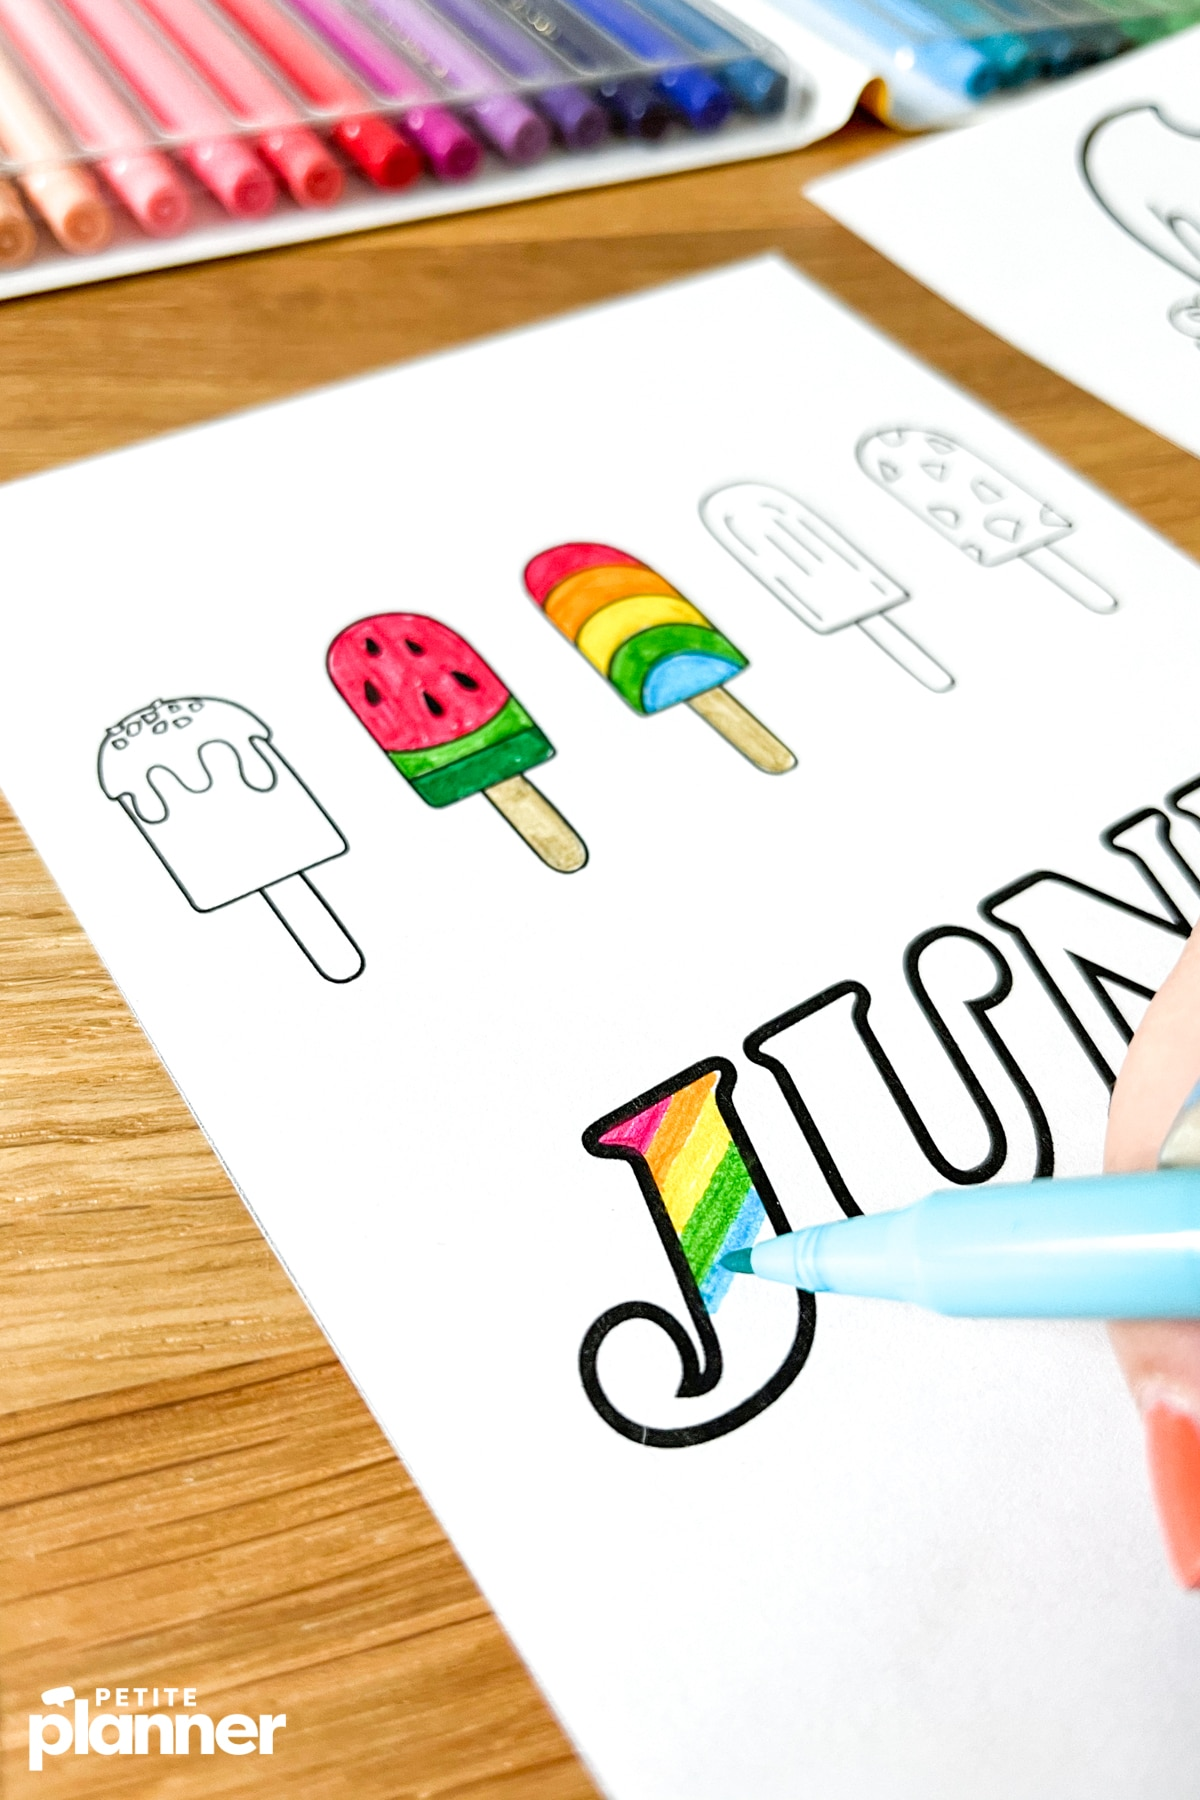 Coloring June cover page with markers